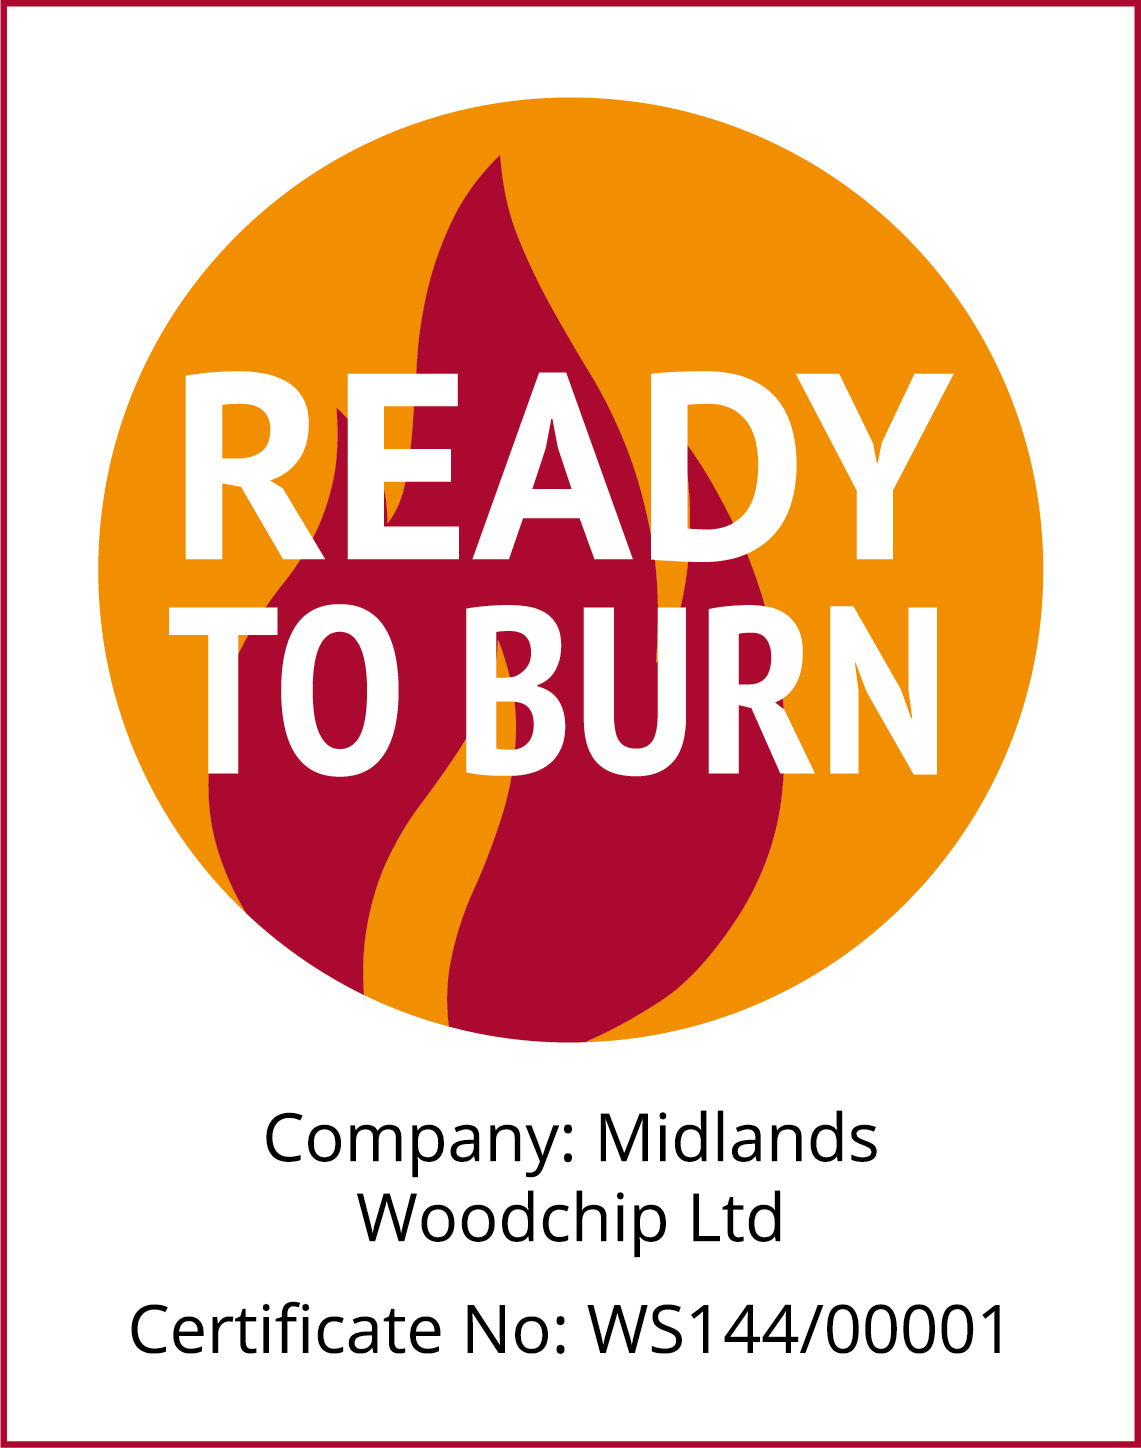 Ready To Burn company certificate